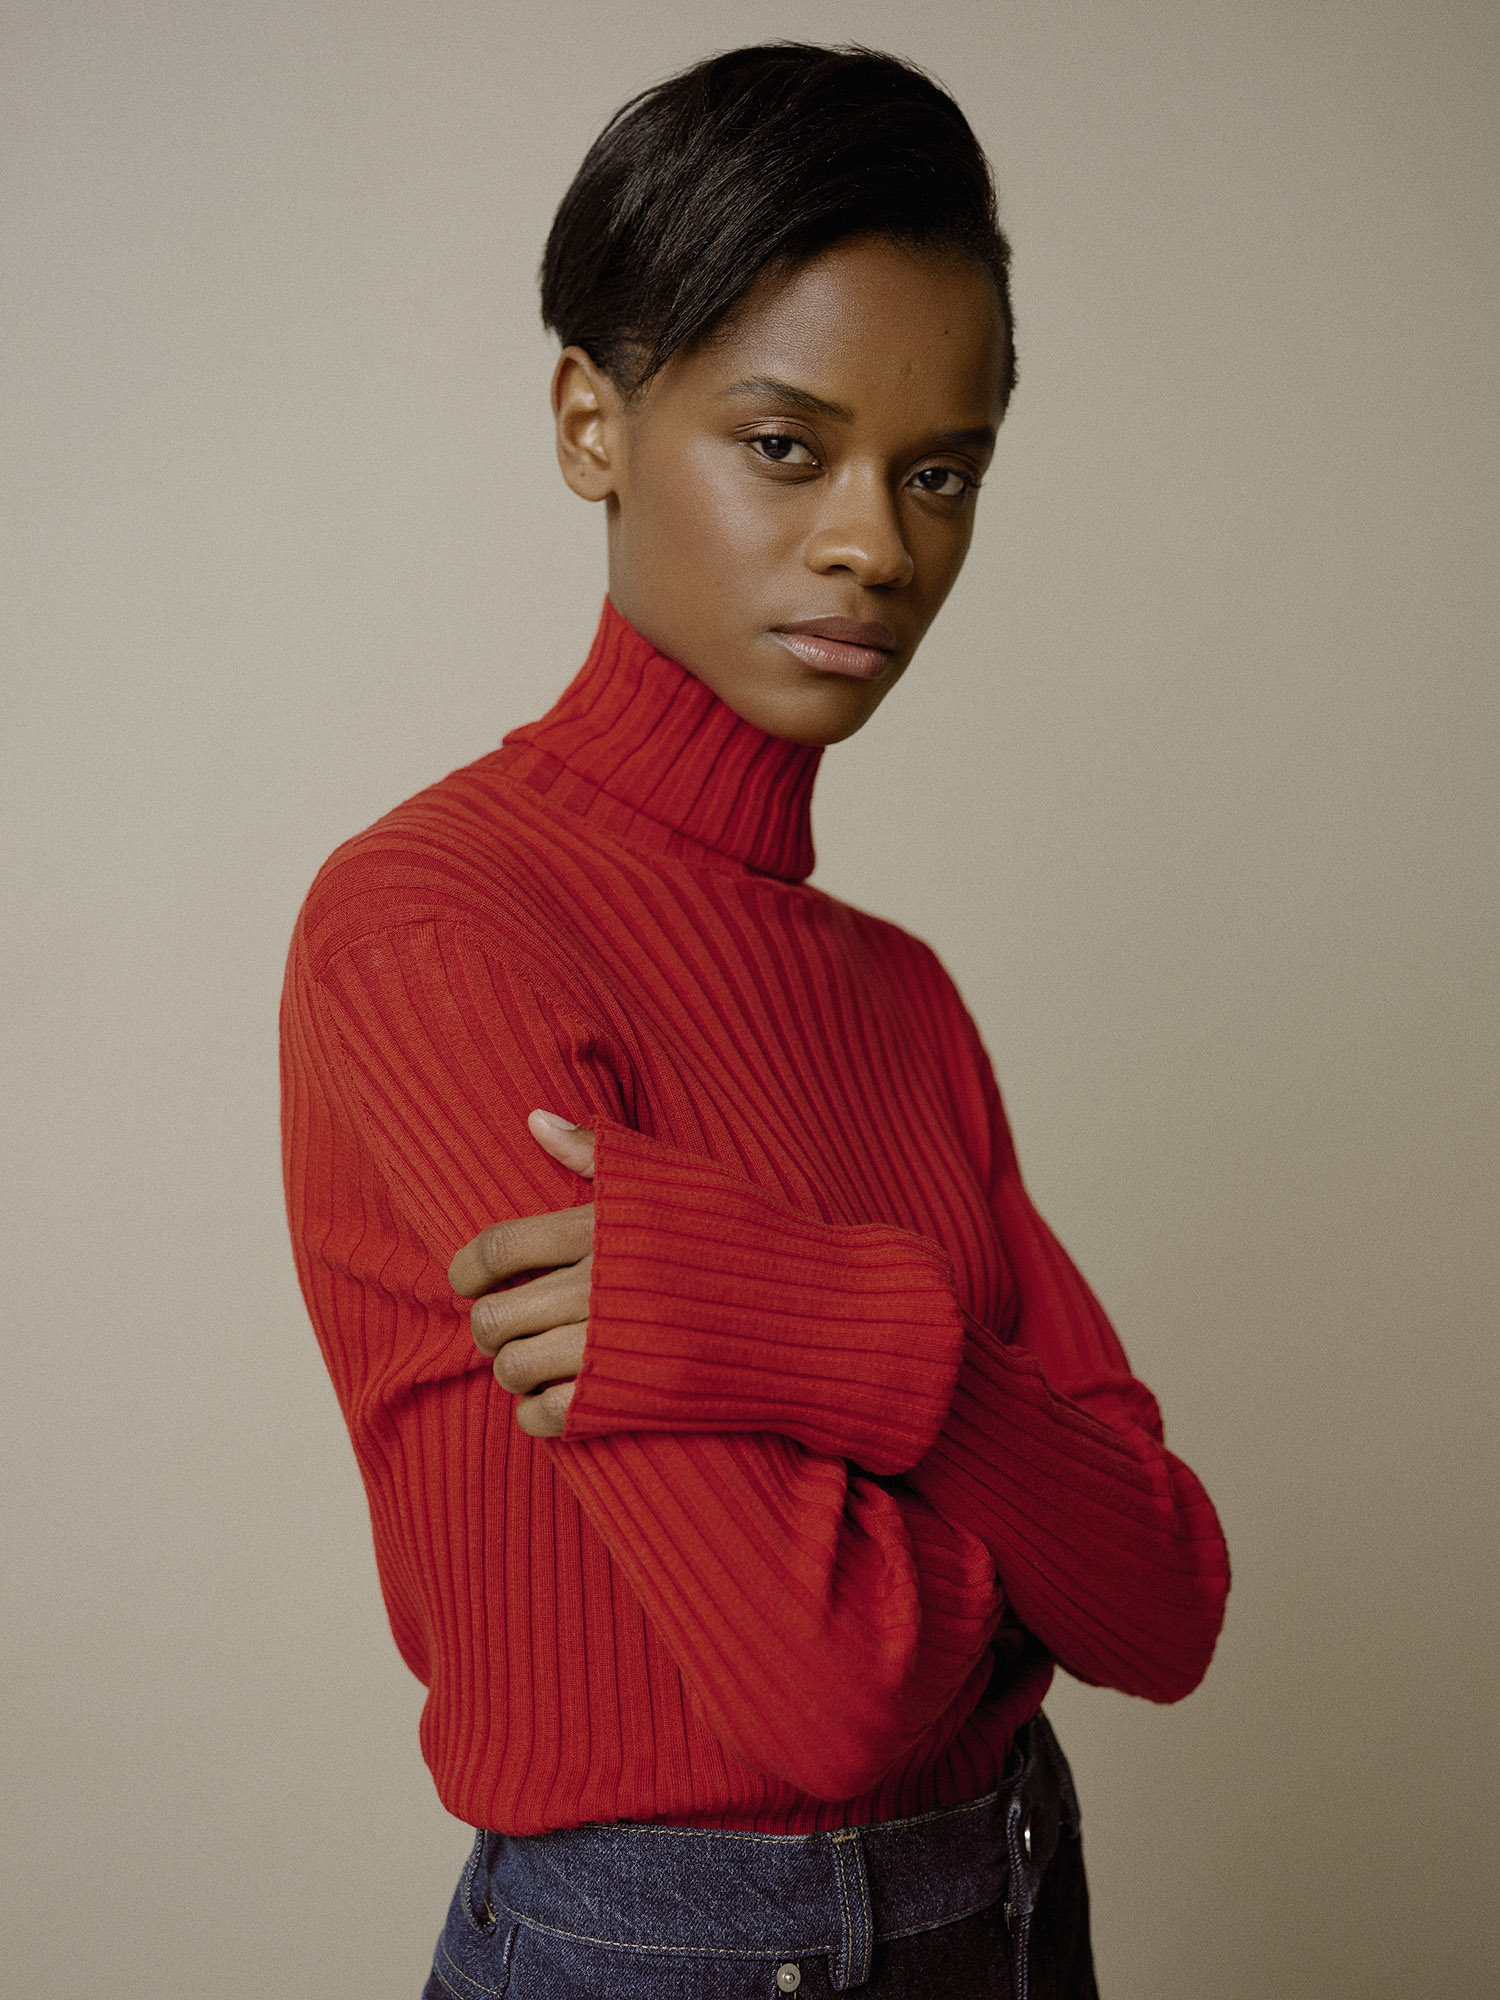 181119_ES_Letitia Wright_06_015_FINAL_RGB.jpg